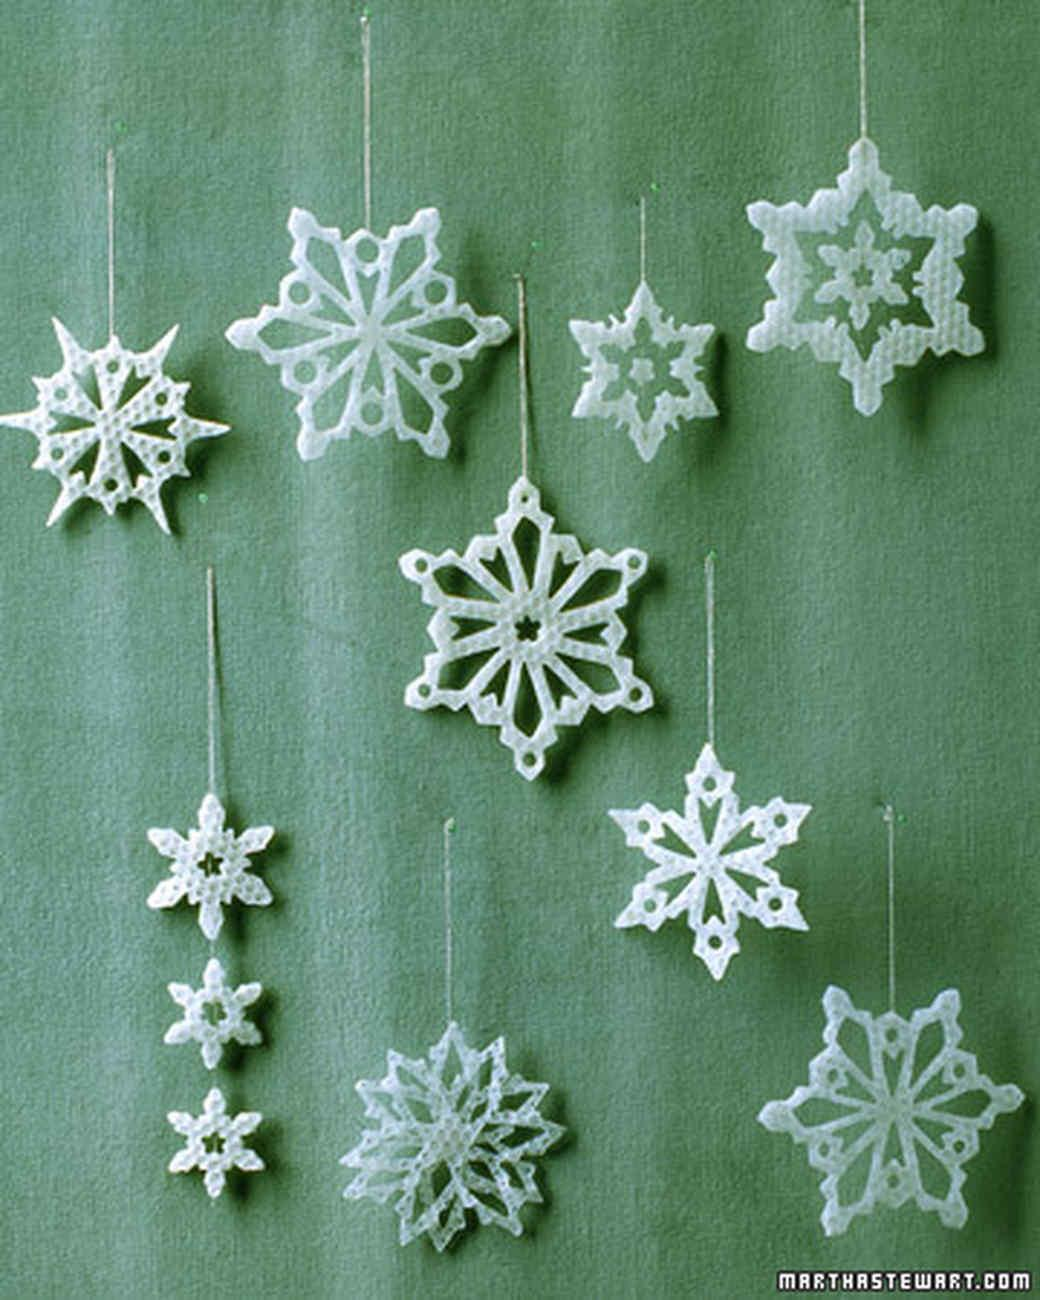 Snowflake Ornaments Guarantee White Christmas